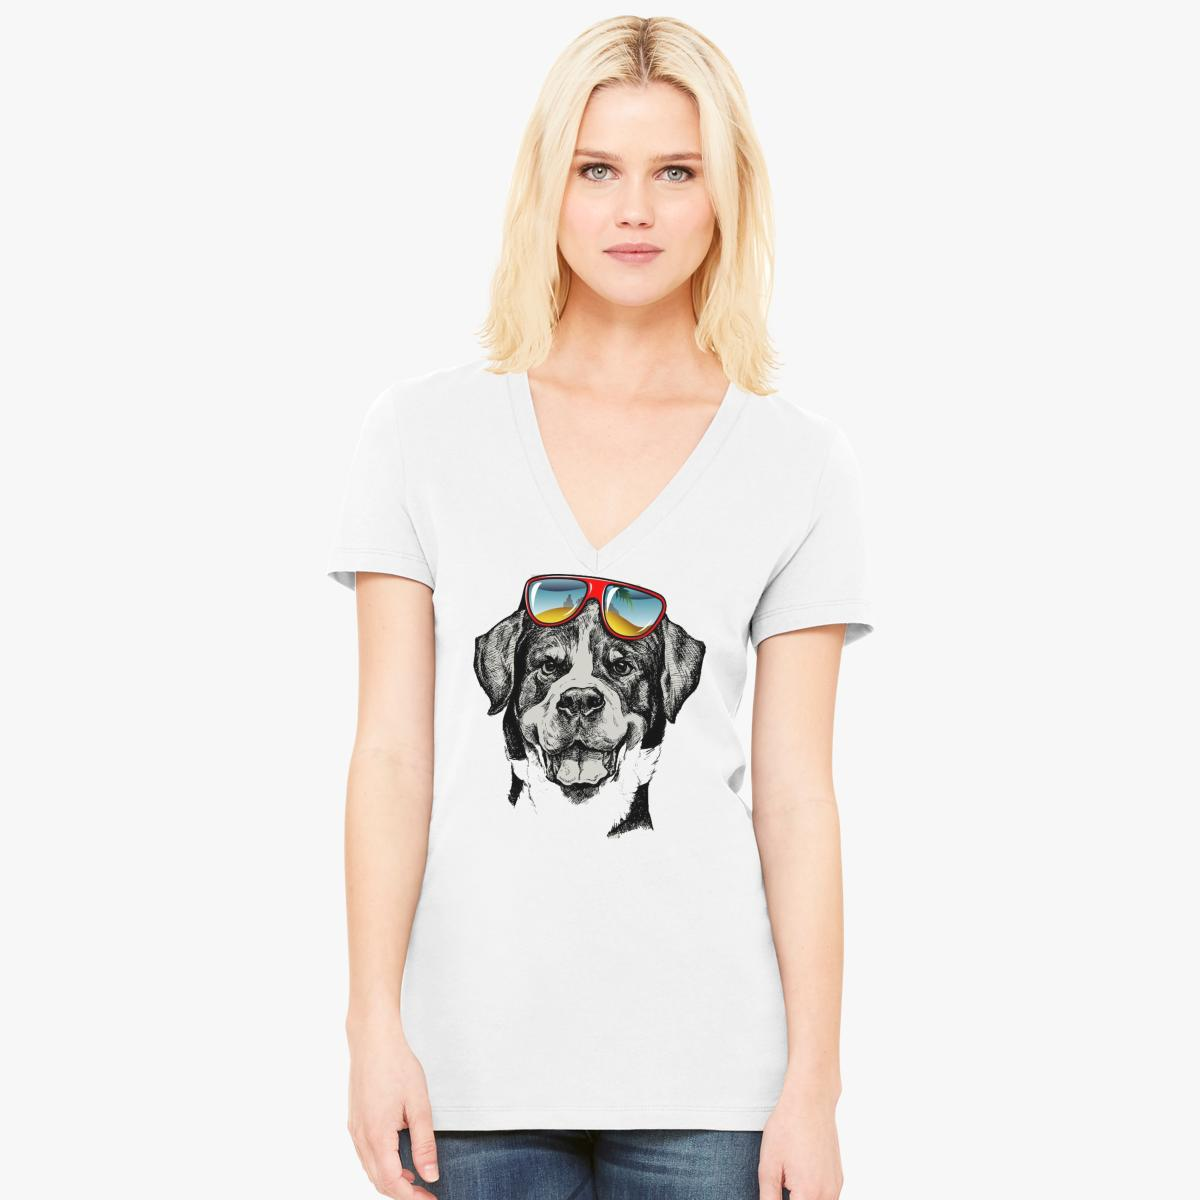 b1331e64 Cool T Shirts For Dogs